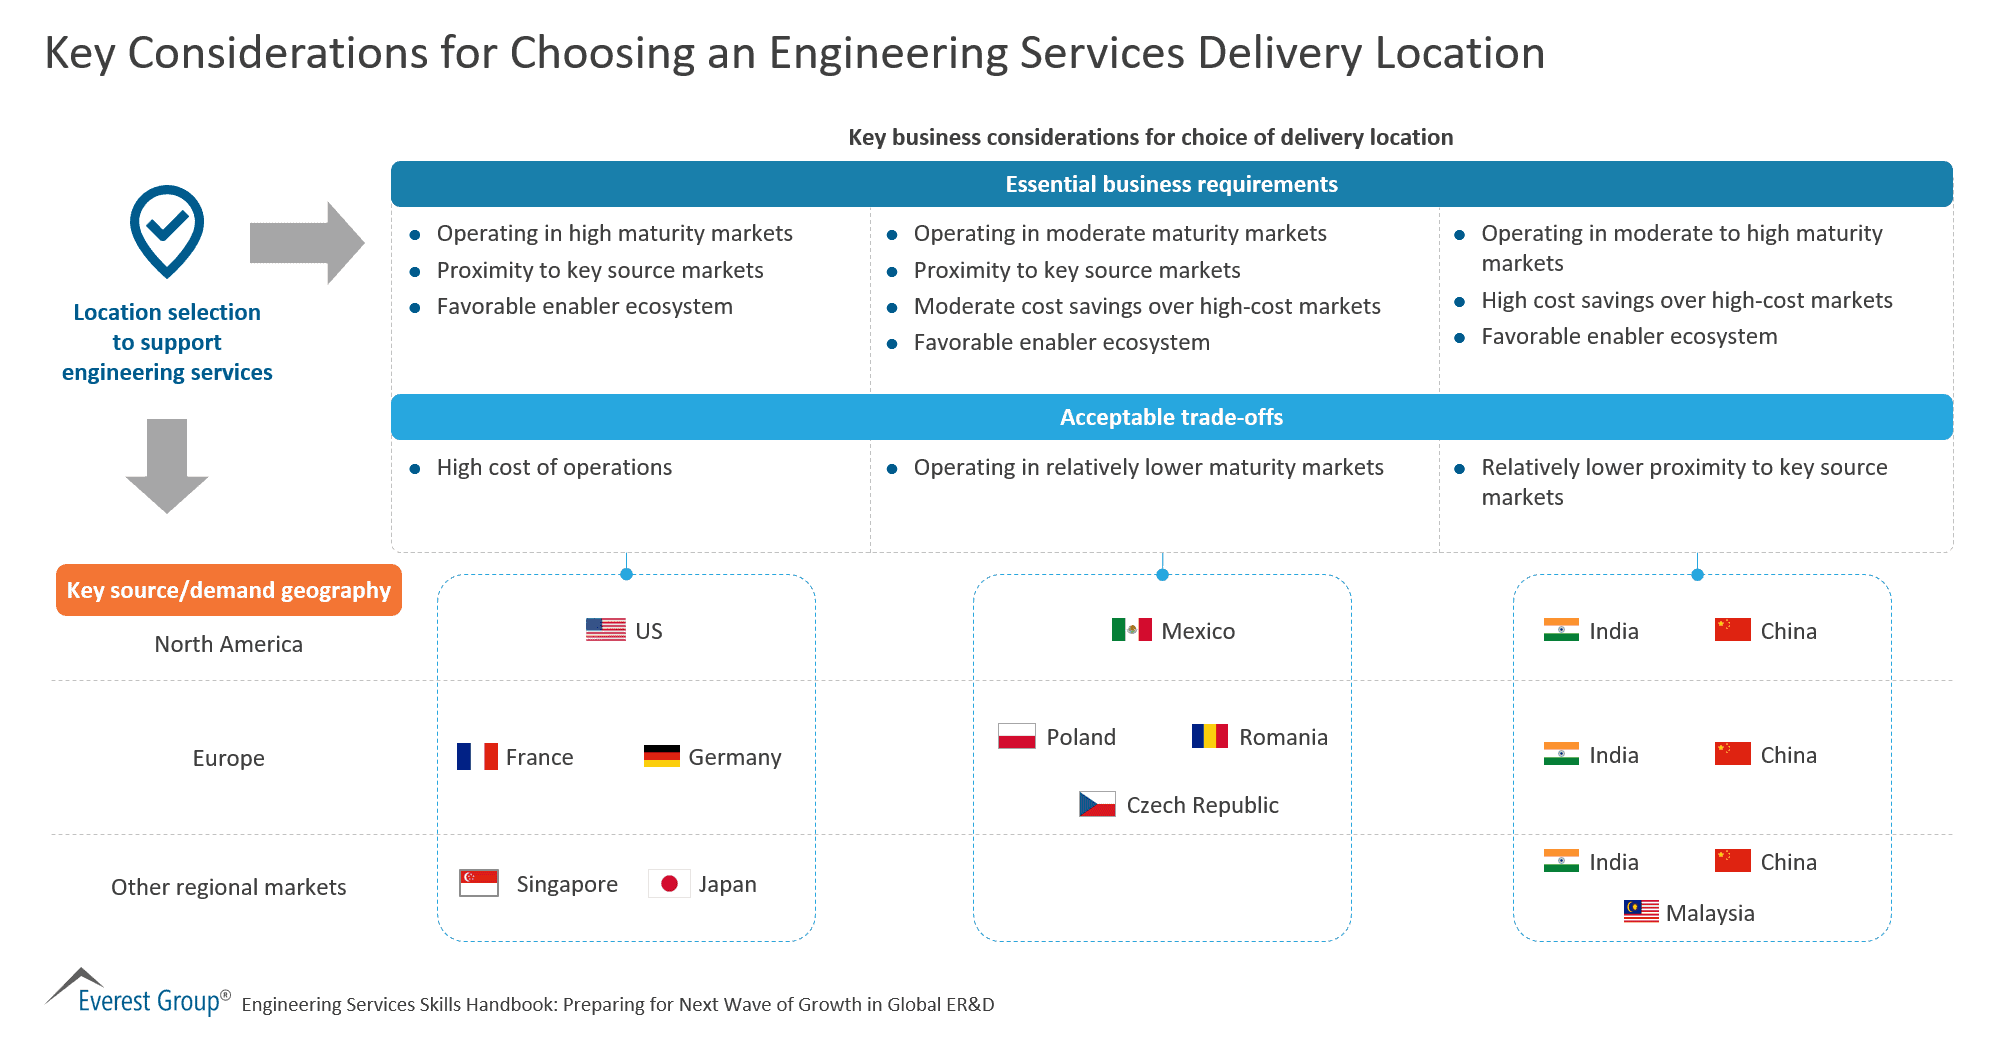 Key Considerations for Choosing an Engineering Services Delivery Location